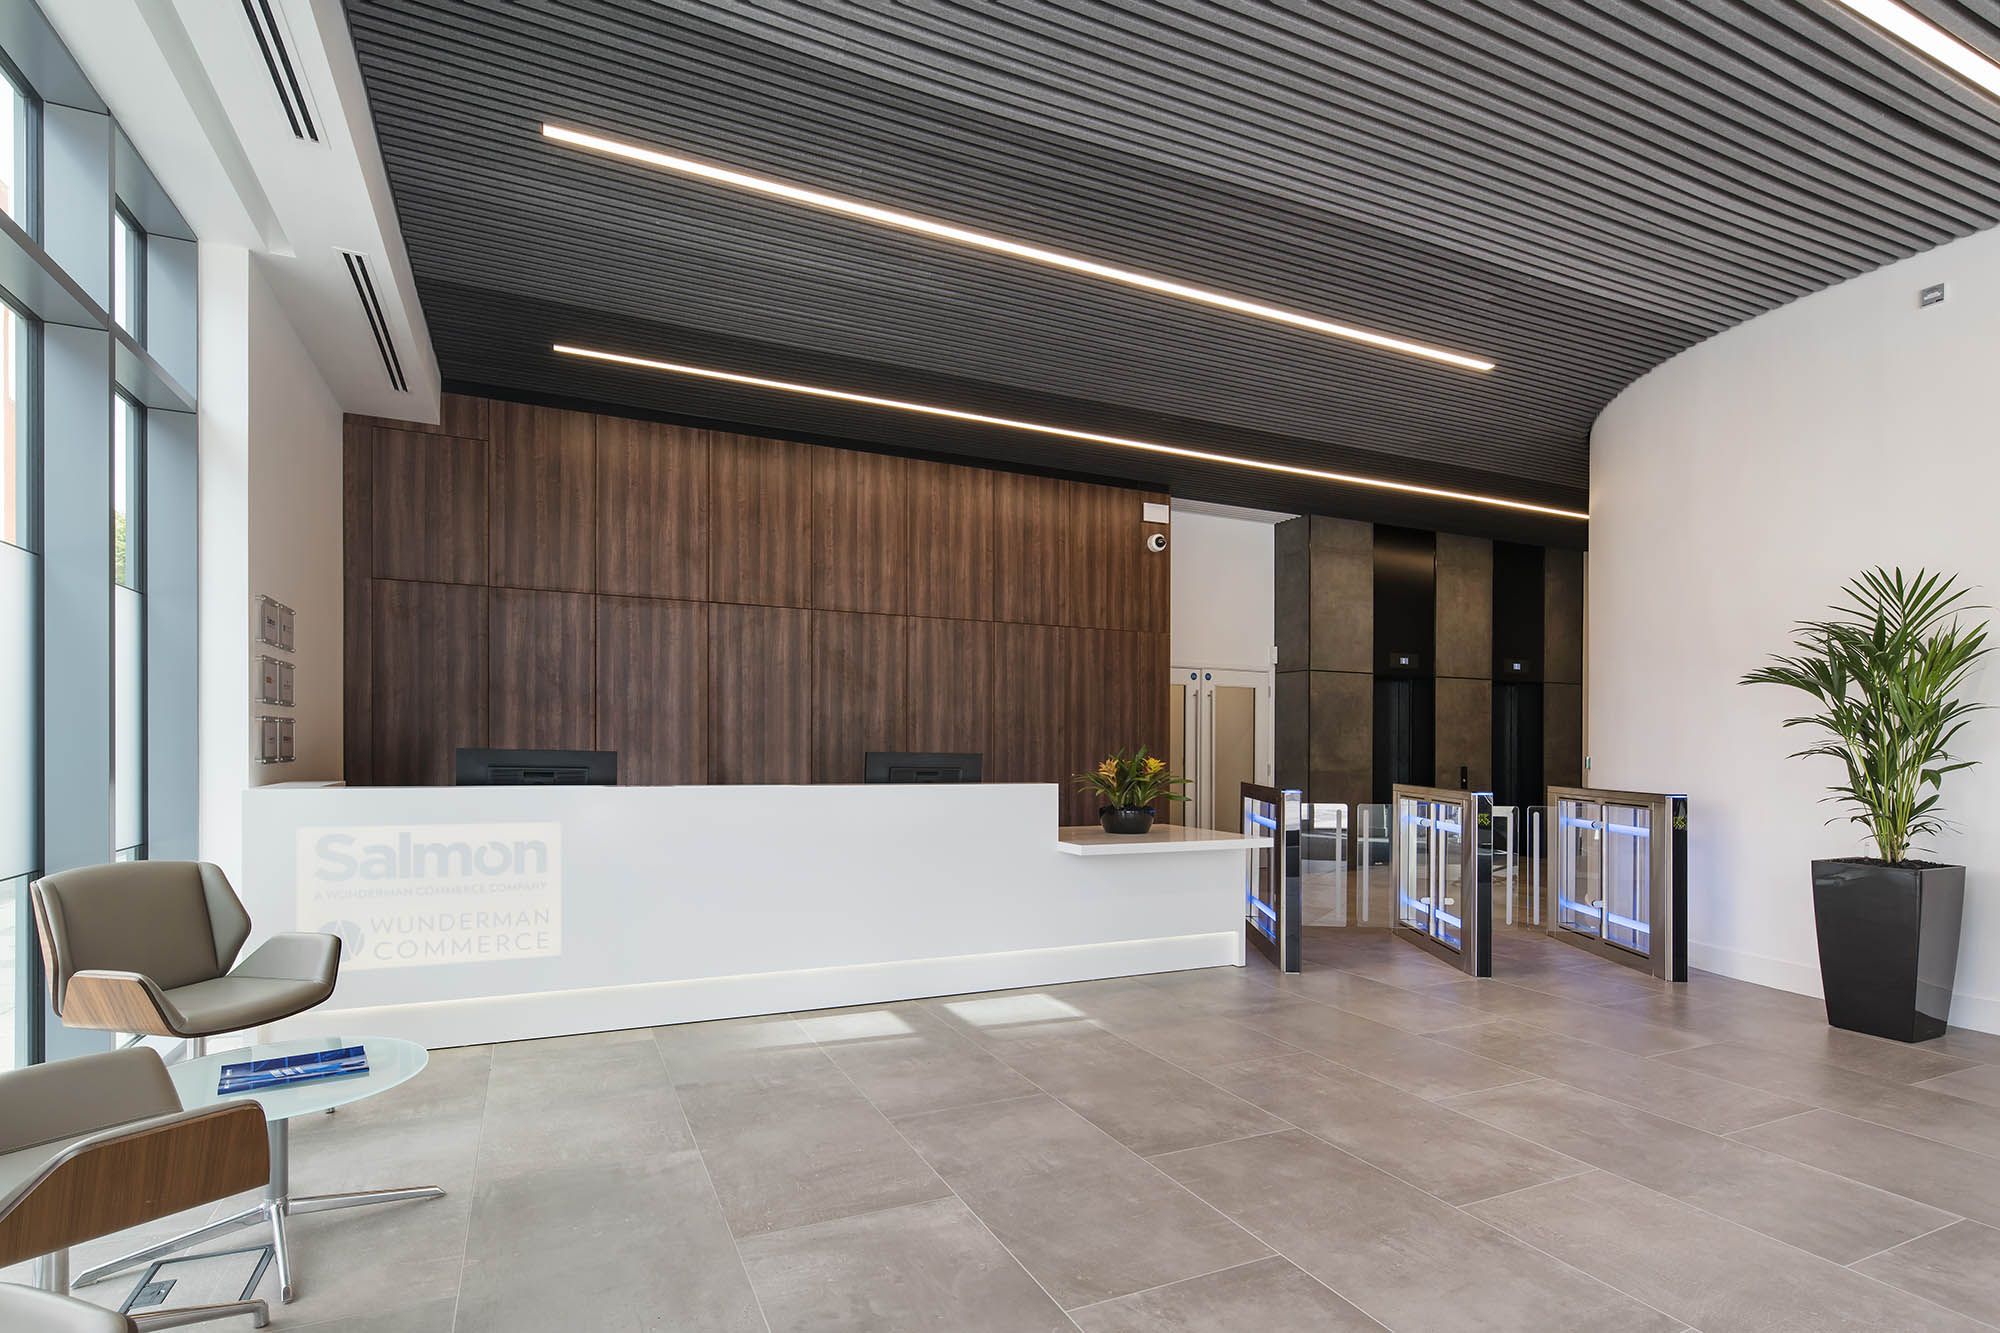 Salmon Reception Area